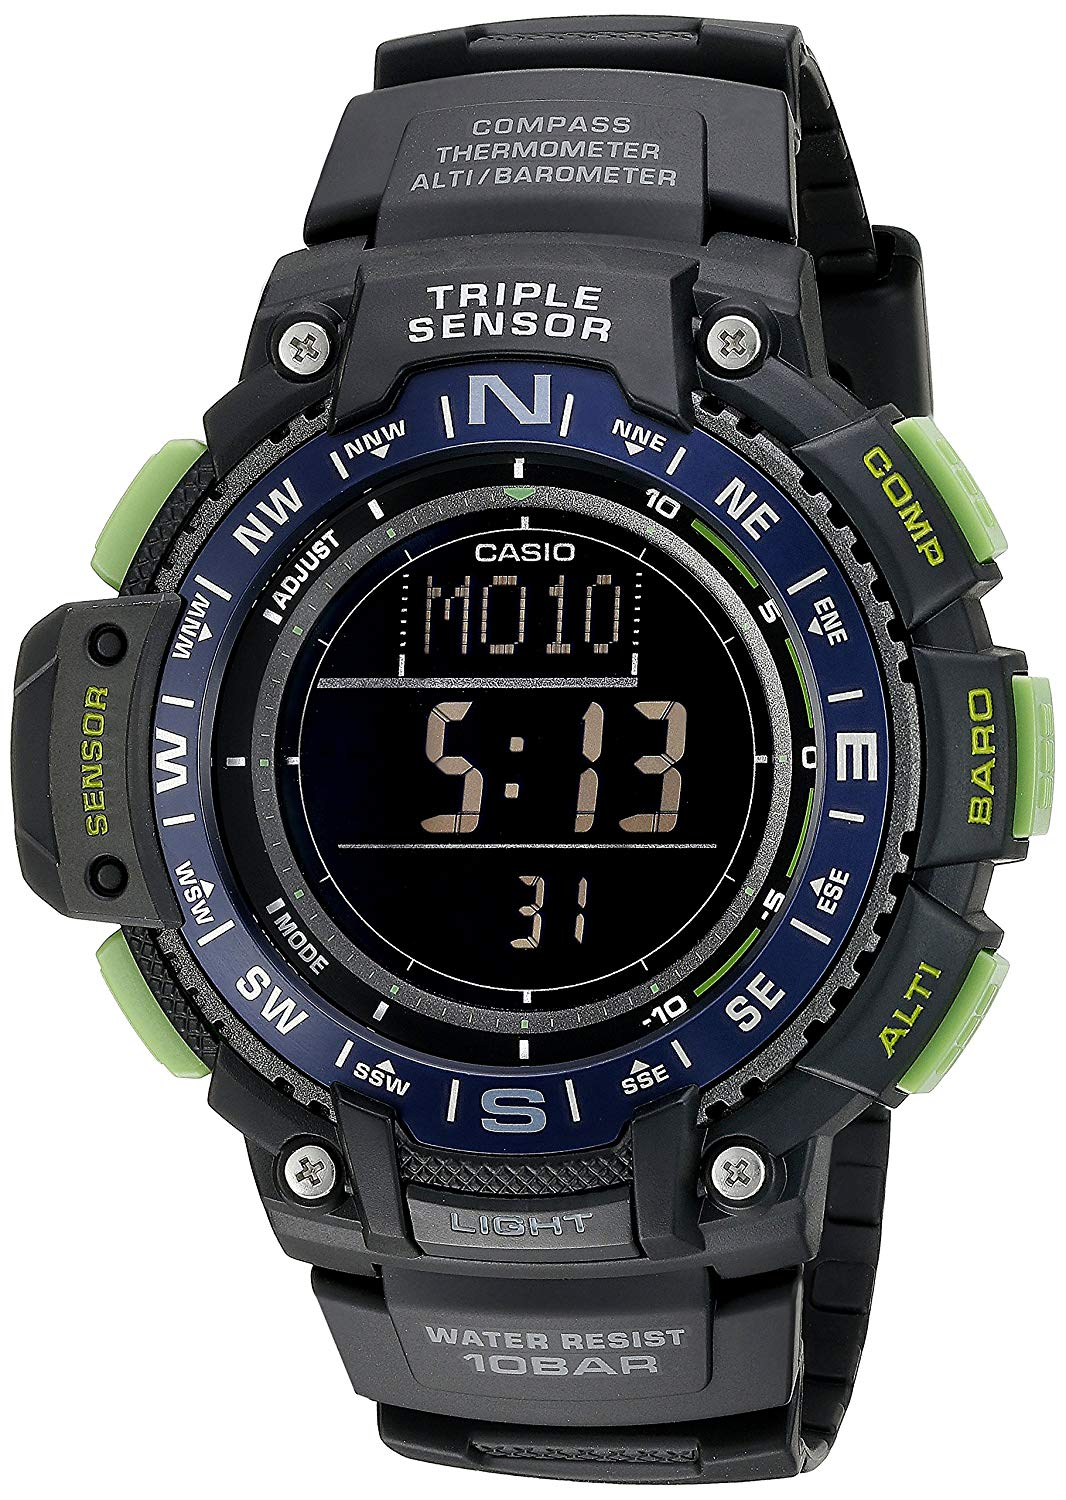 Top 10 Best Hiking Watches Under 100 Dollars in 2020 Reviews 1